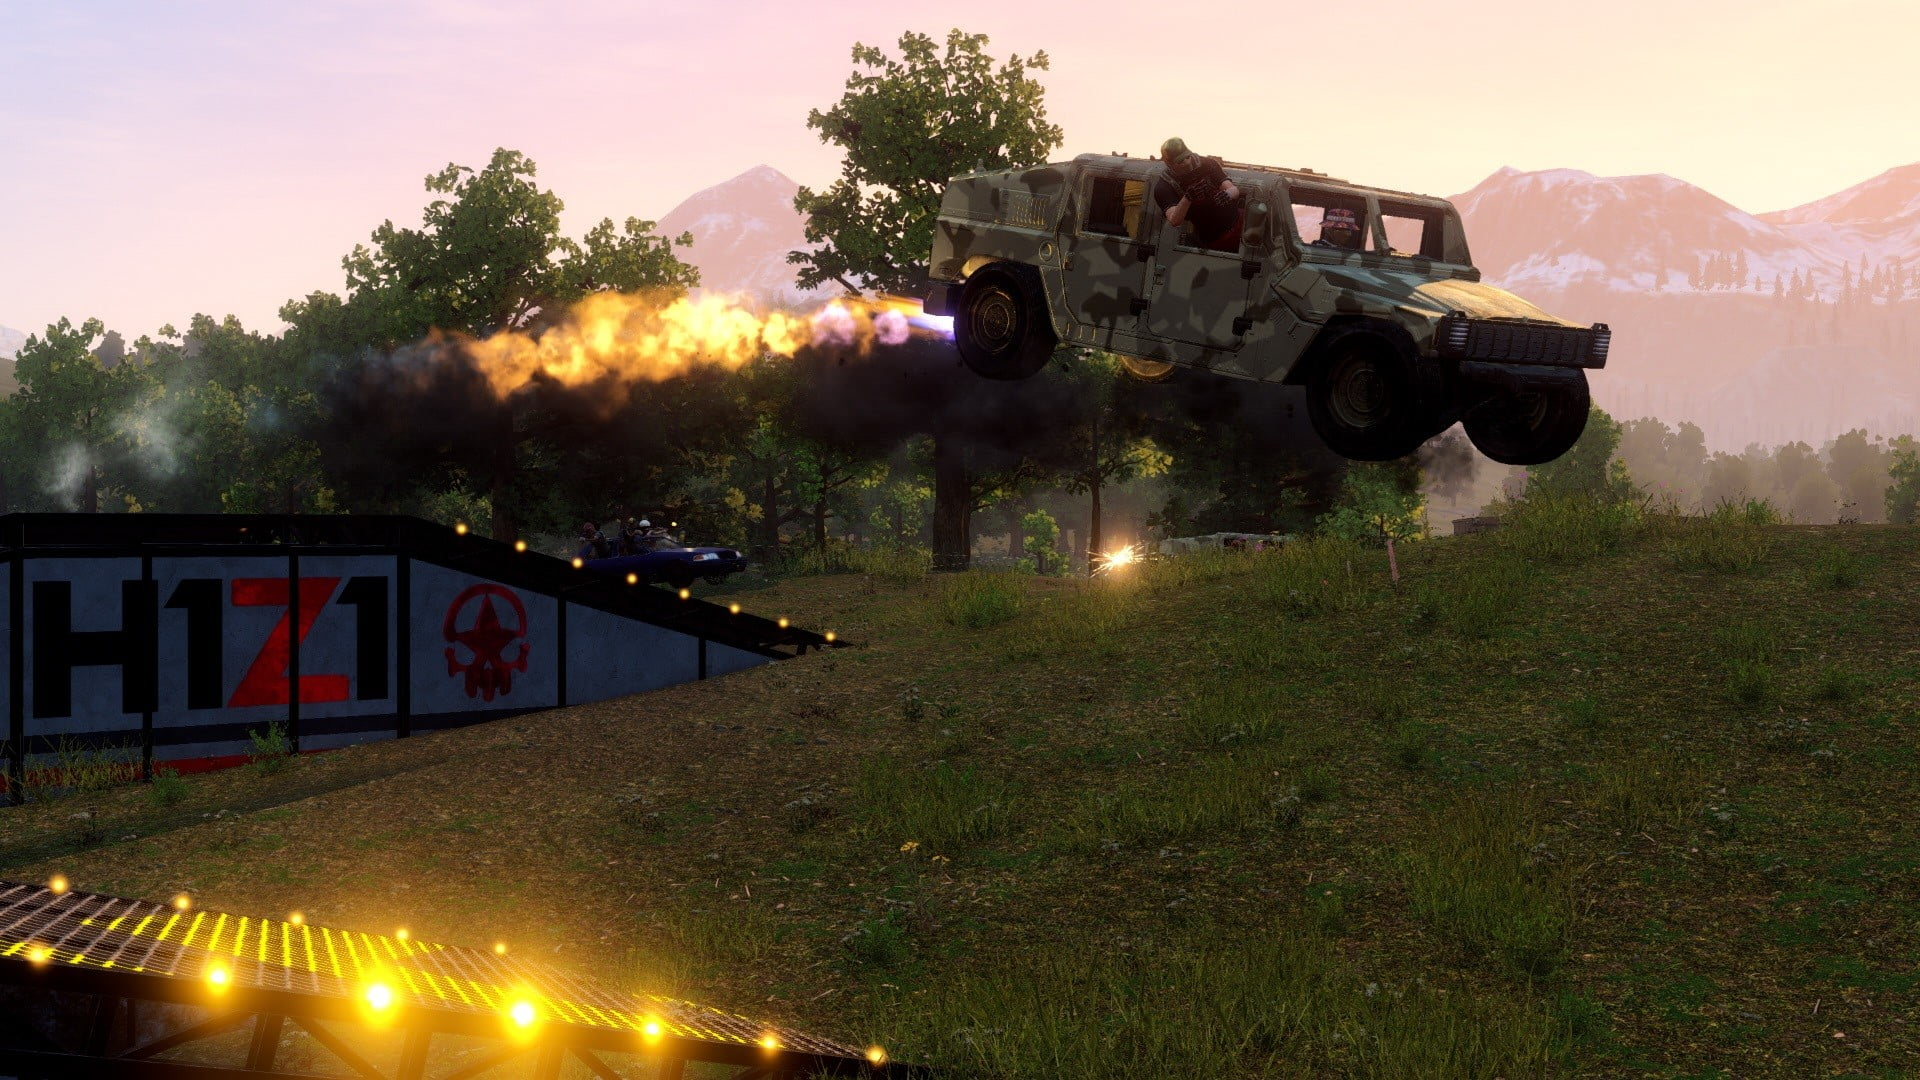 H1Z1' Goes Free-to-Play, Announces Battle Royale Esports